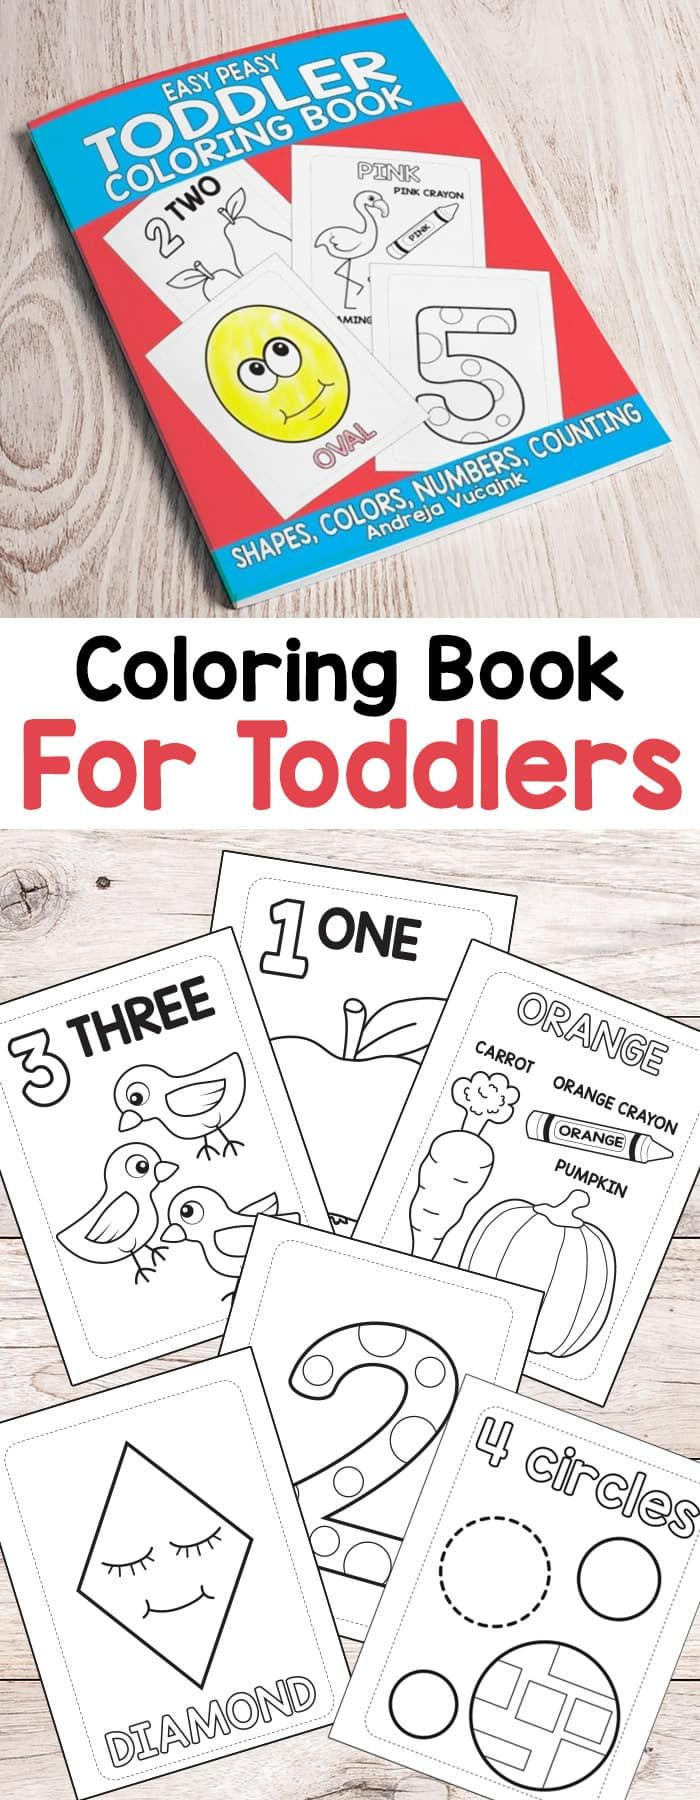 The zoology coloring book - Easy Peasy Toddler Coloring Book